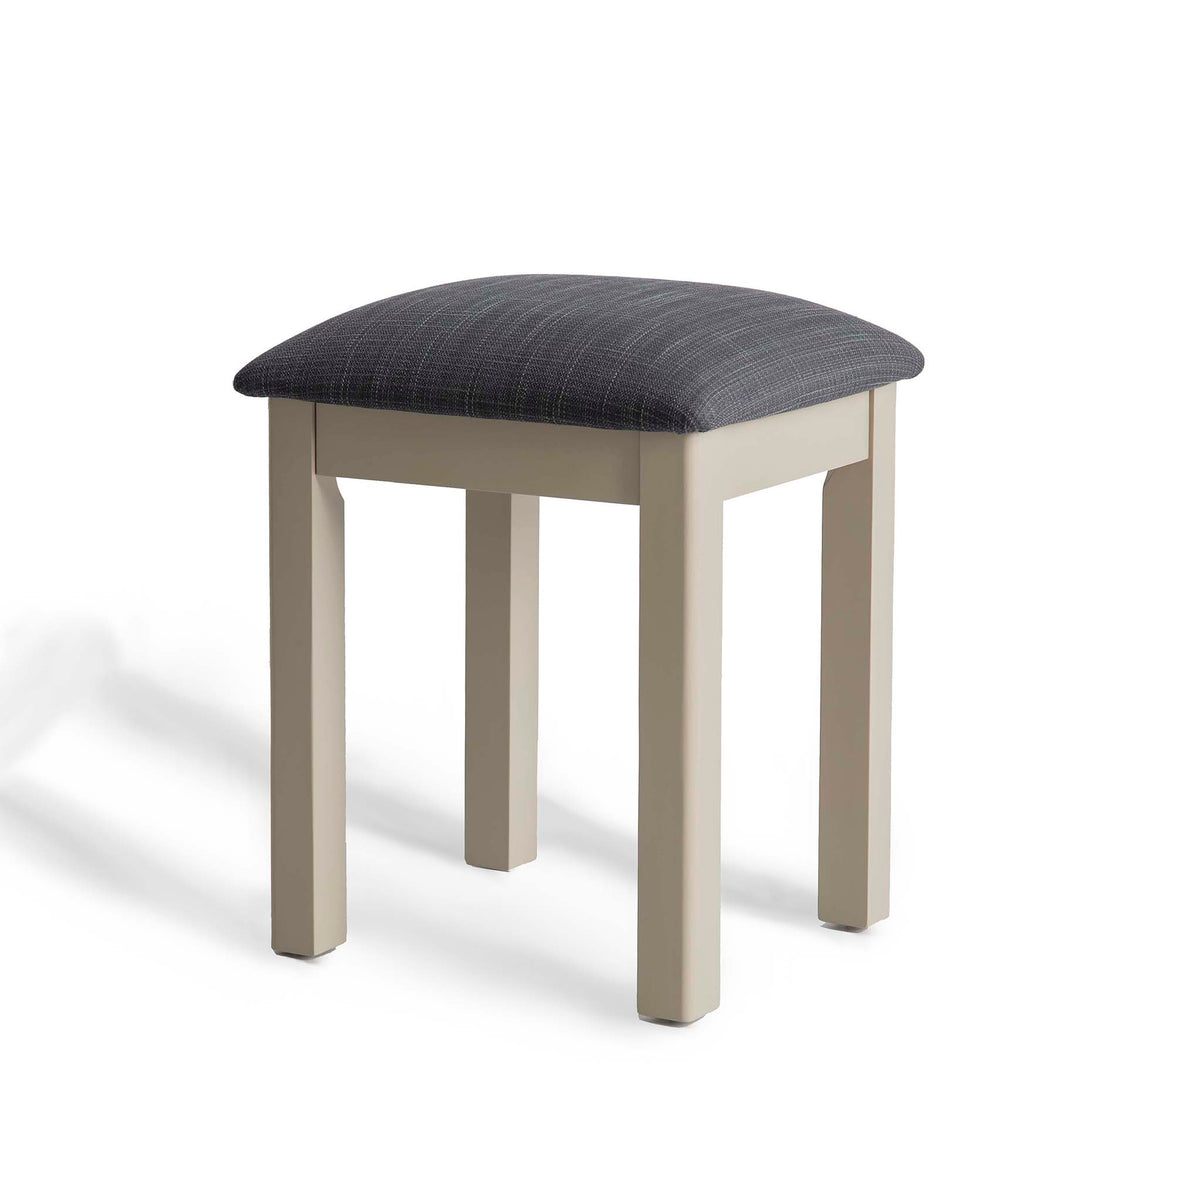 The Padstow Stone Grey Dressing Table Stool  - Side view